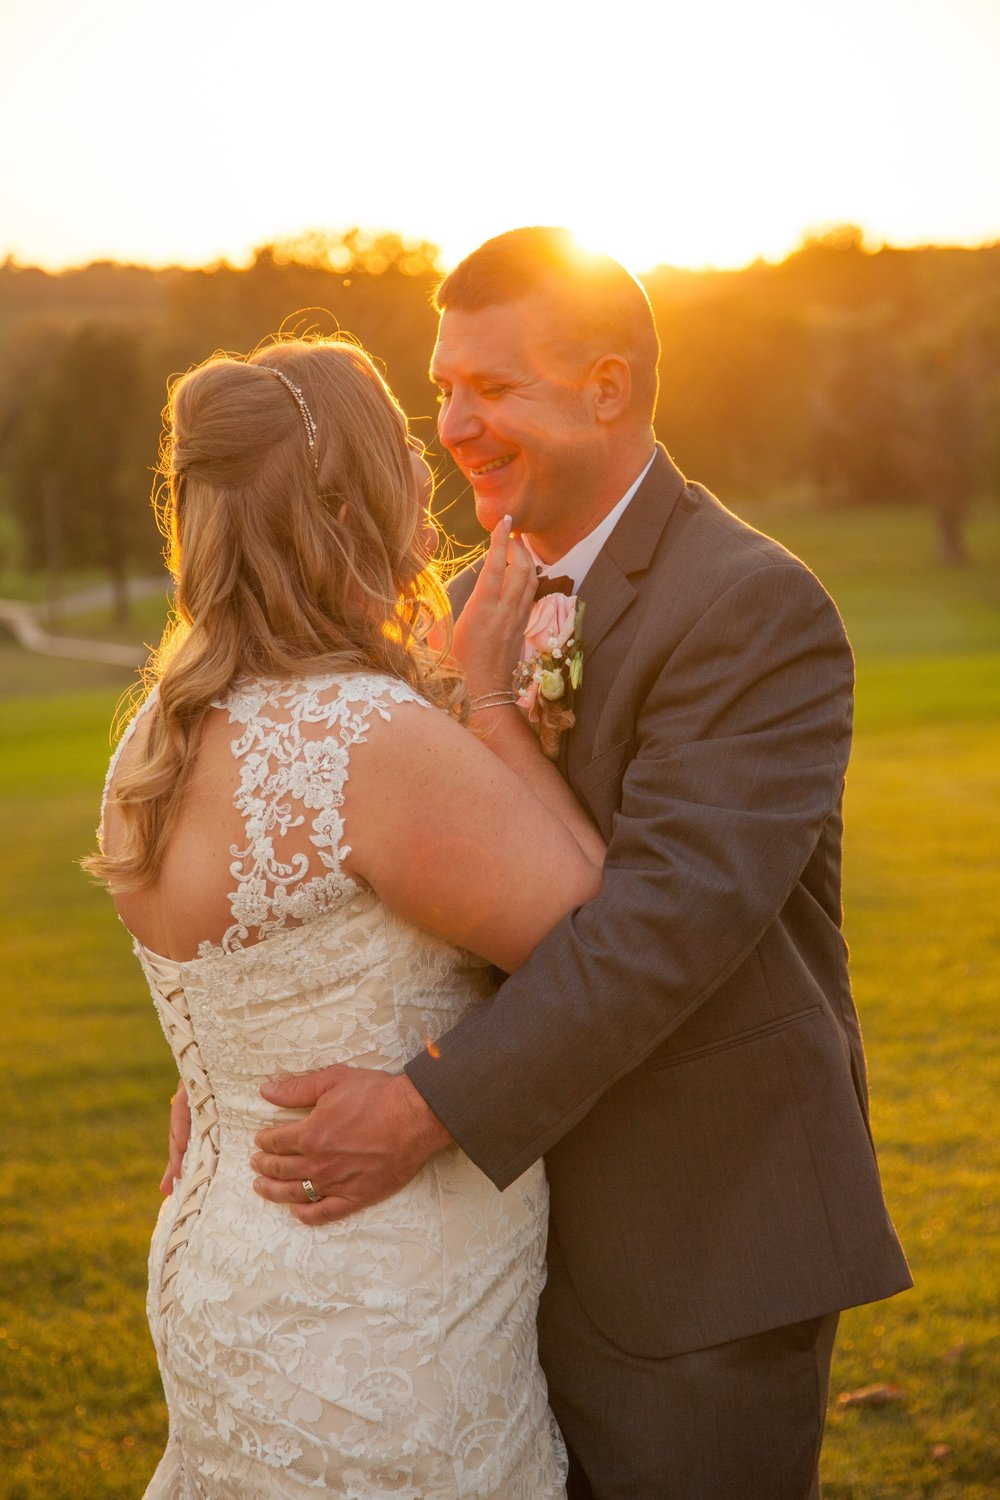 """""""Anyone looking for a photographer to capture all the memories of your special day, check out Dani!! She was absolutely amazing every step of the way, and just made everything a whole lot easier. I still can't believe how beautiful all our photos came out and am looking forward to her capturing our future special moments!!"""" - Heather & Joe"""